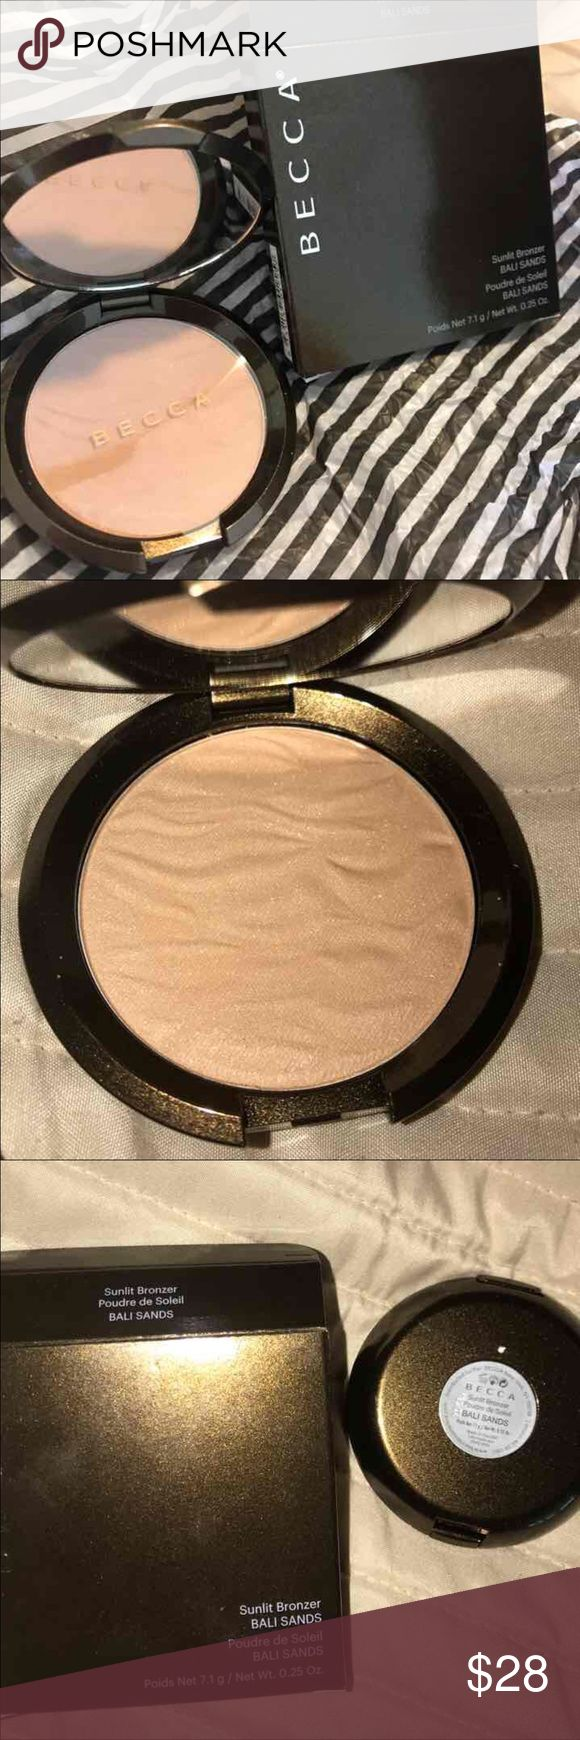 """NWT! BECCA SUNLIT BRONZER """"BALI SANDS"""" New product. LOVE IT!! Shade is """"BALI SANDS"""". Price is firm unless bundled. Thanks for looking. BECCA Makeup Bronzer"""